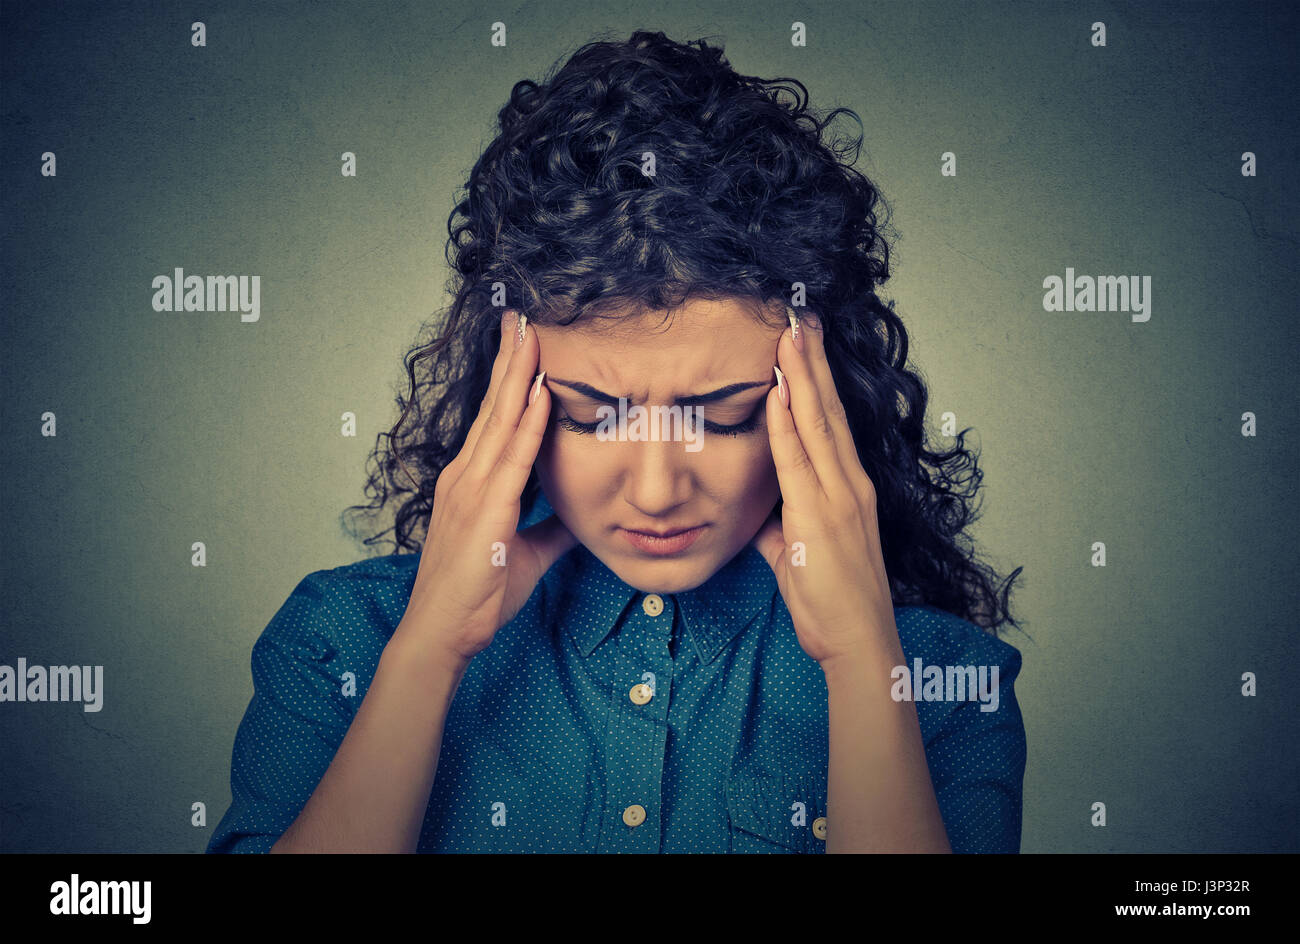 Closeup portrait worried sad young looking down isolated on gray wall background - Stock Image